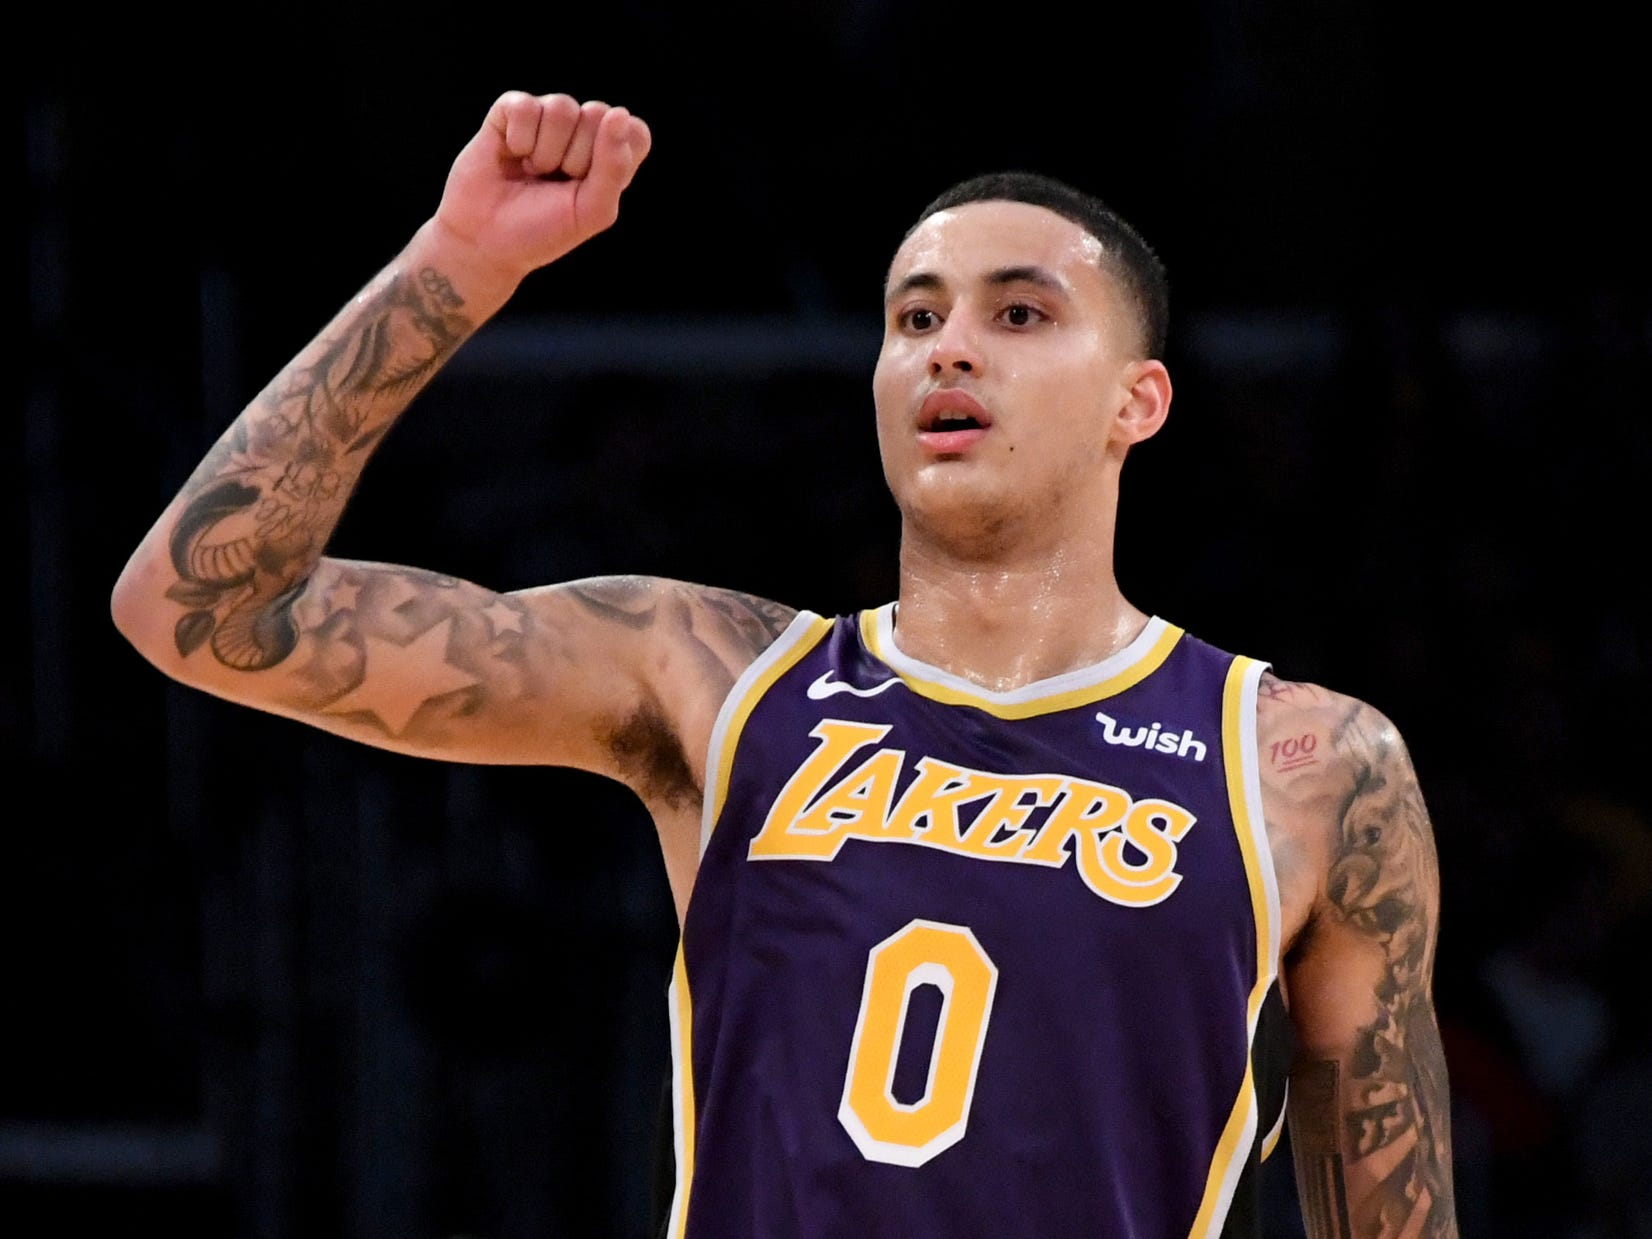 Los Angeles Lakers forward Kyle Kuzma (0) reacts  in the second half against the Detroit Pistons at the Staples Center on Wednesday, Jan. 9, 2019, in Los Angeles.